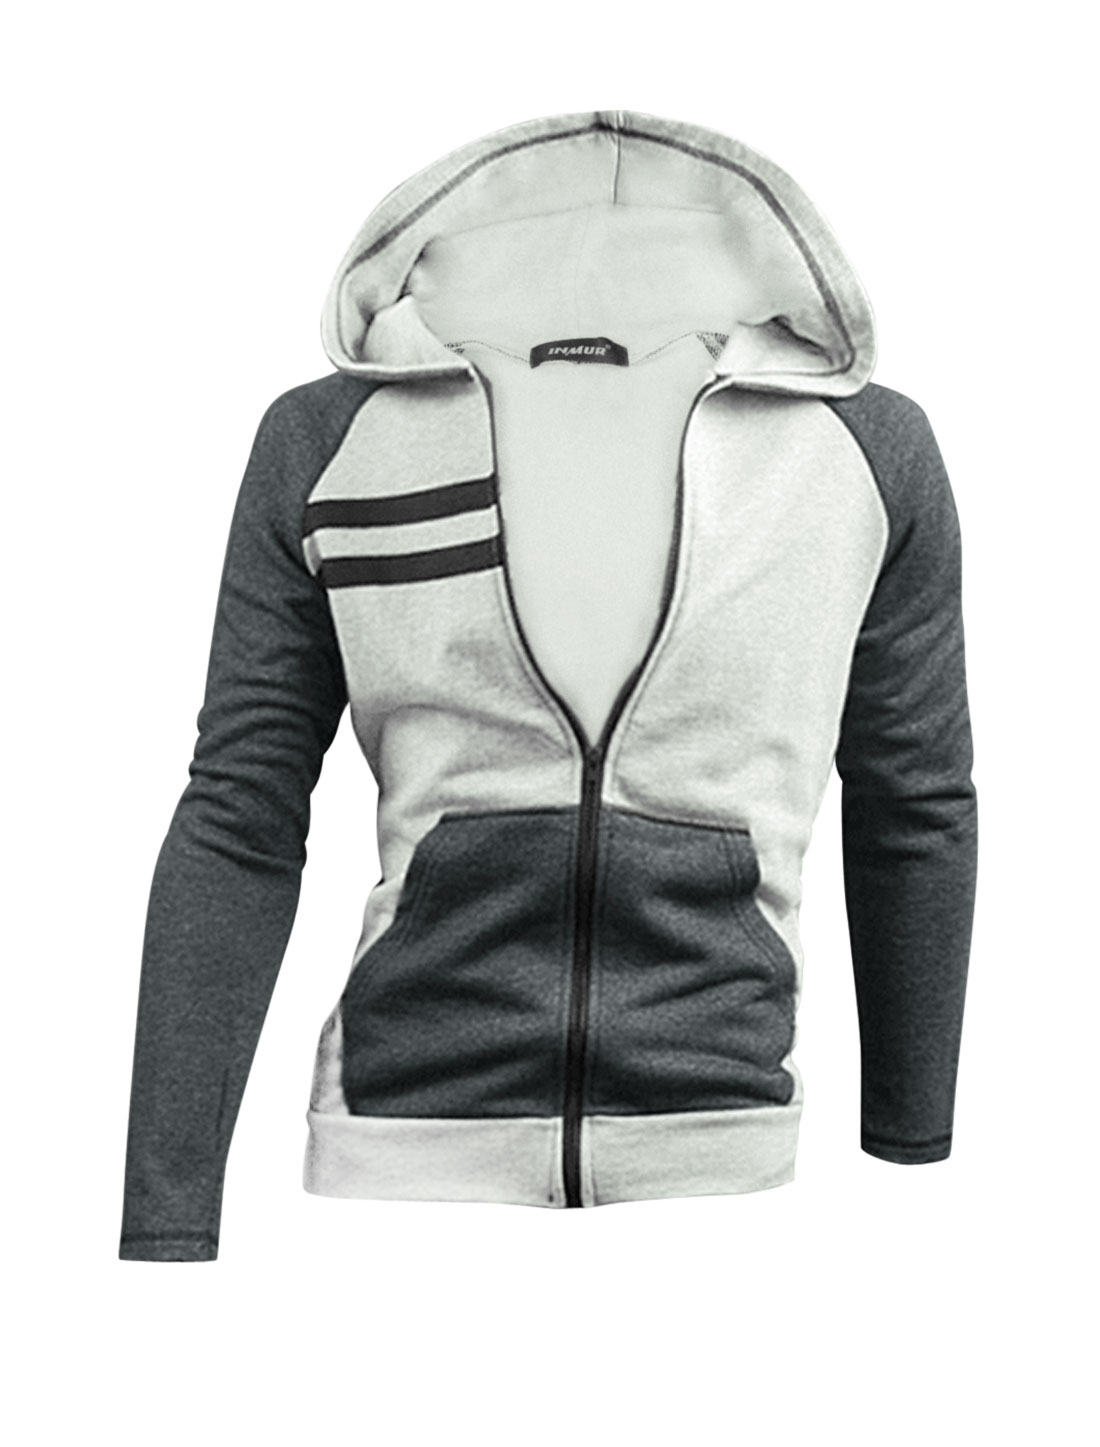 Men Light Gray Zip Closure Front Pockets Color Block Hoodie Jacket M